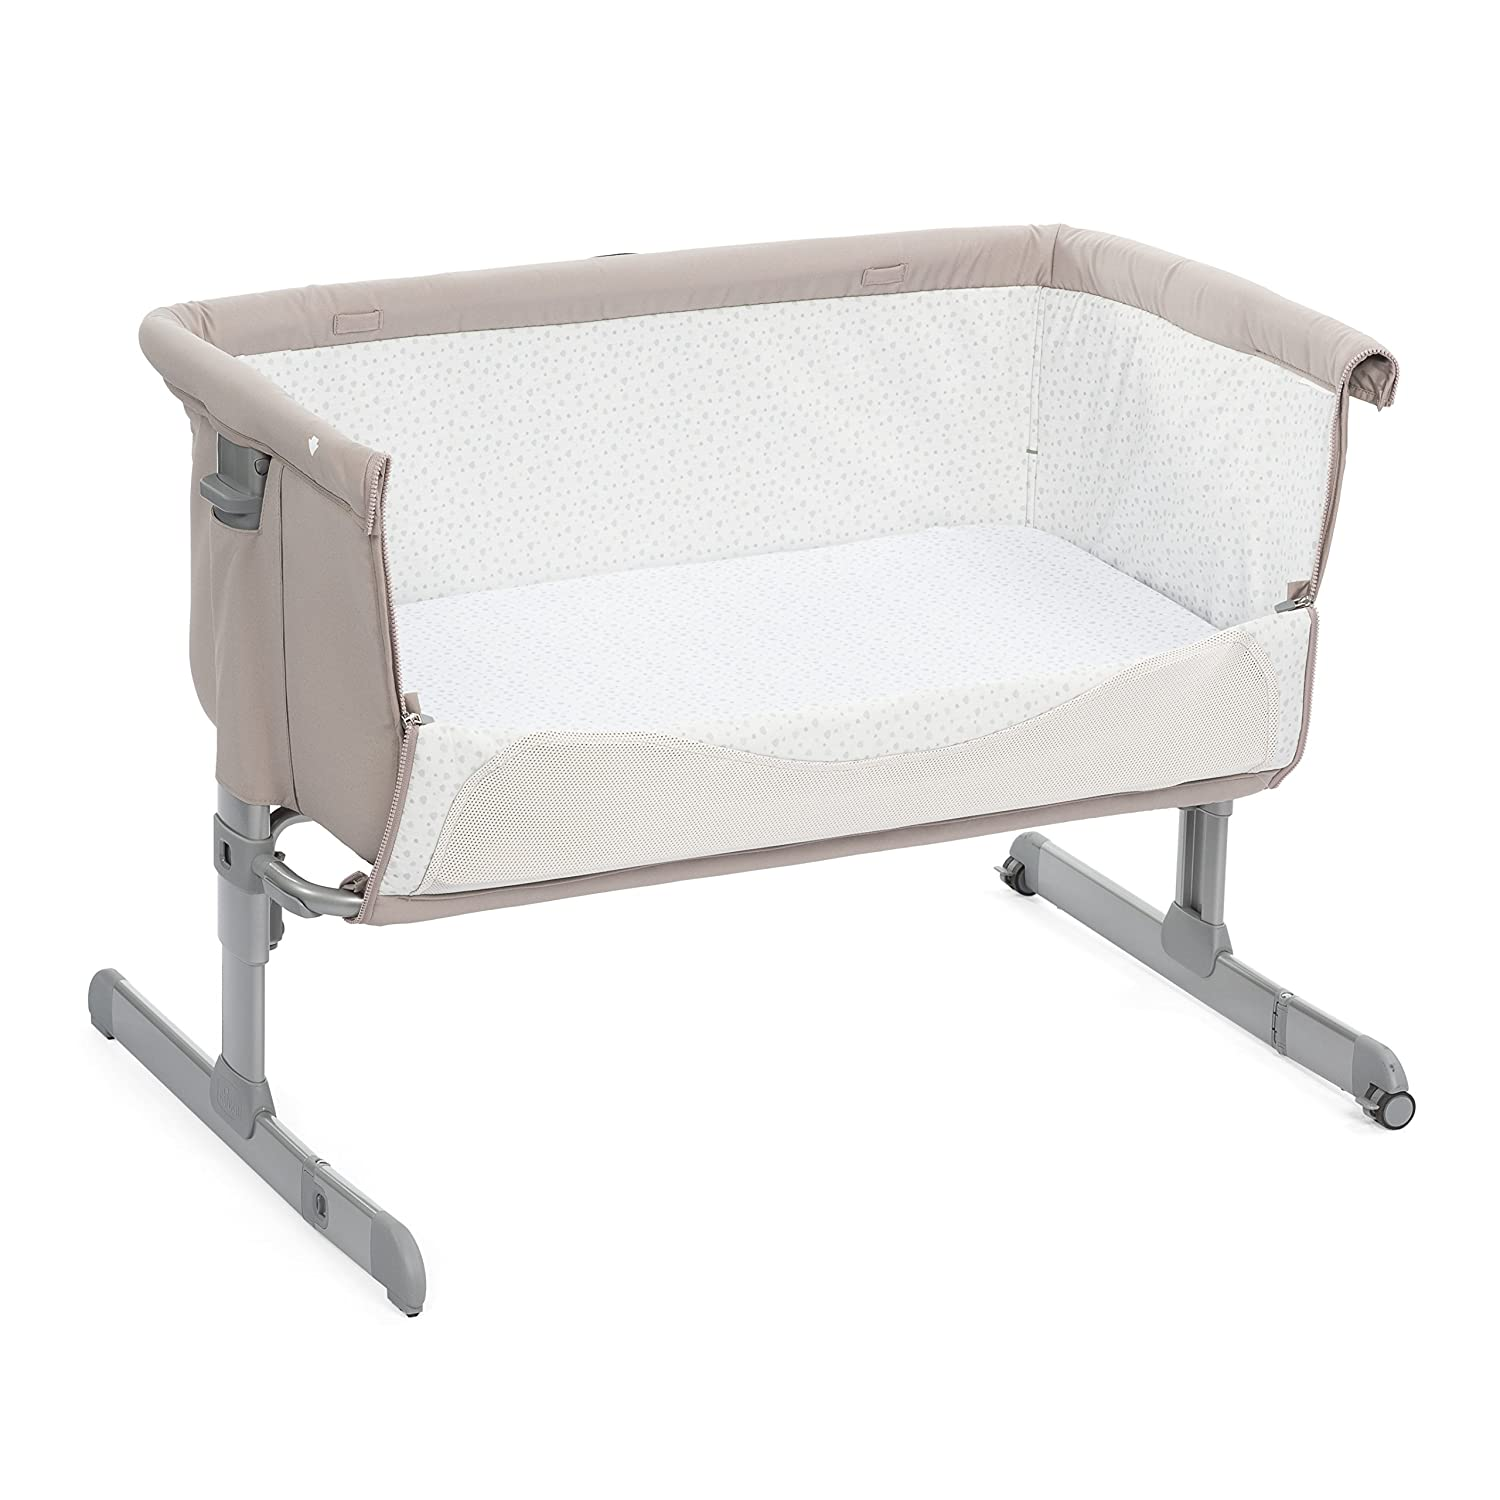 Chicco Next2me Side Sleeping Crib - Chick to Chick ARTSANA UK LTD 7079339220930